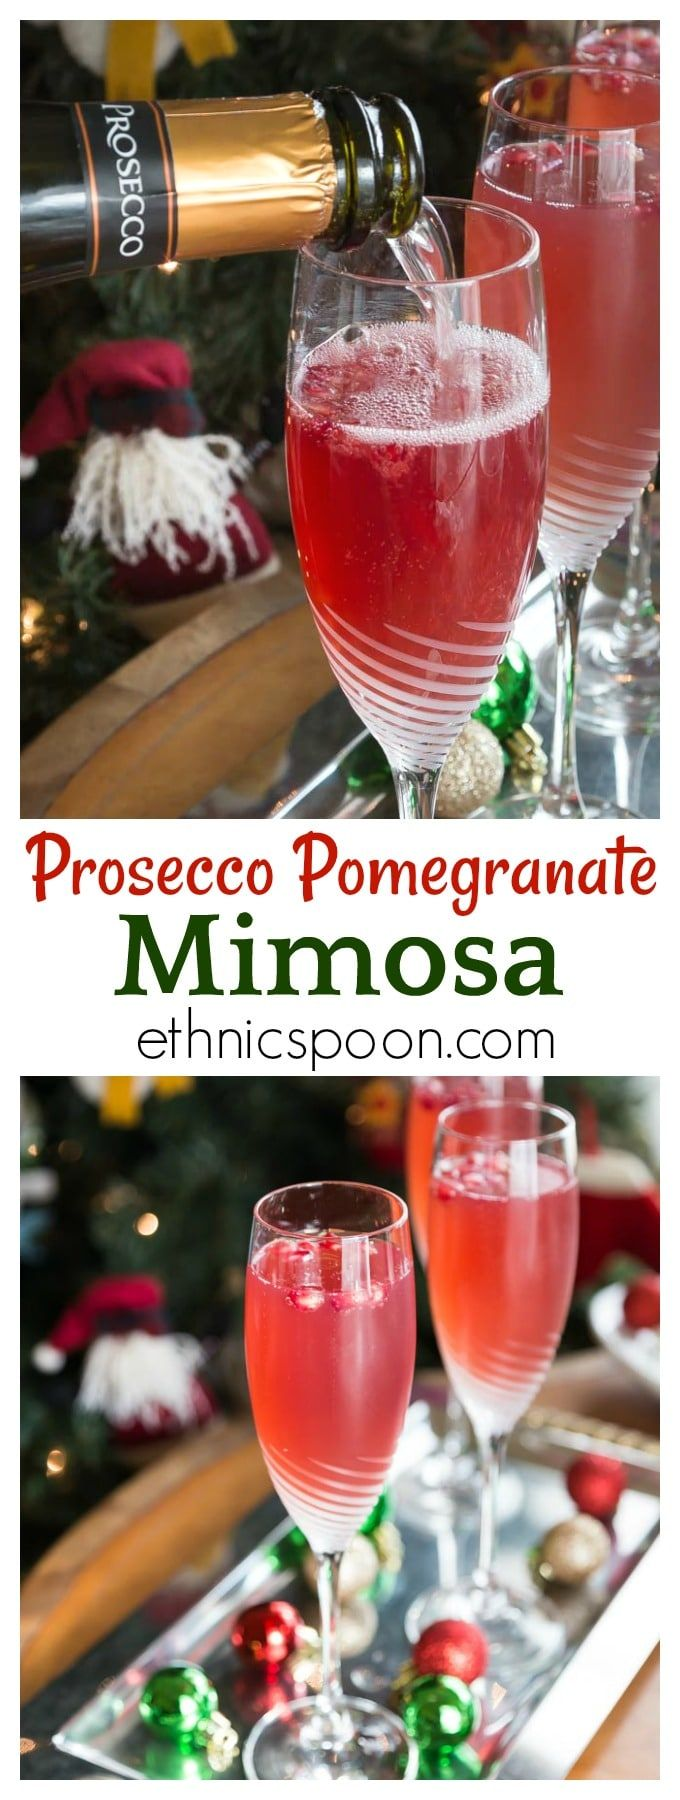 Prosecco Pomegranate Mimosa Recipe With Images Pomegranate Mimosa Brunch Cocktails Prosecco Cocktails